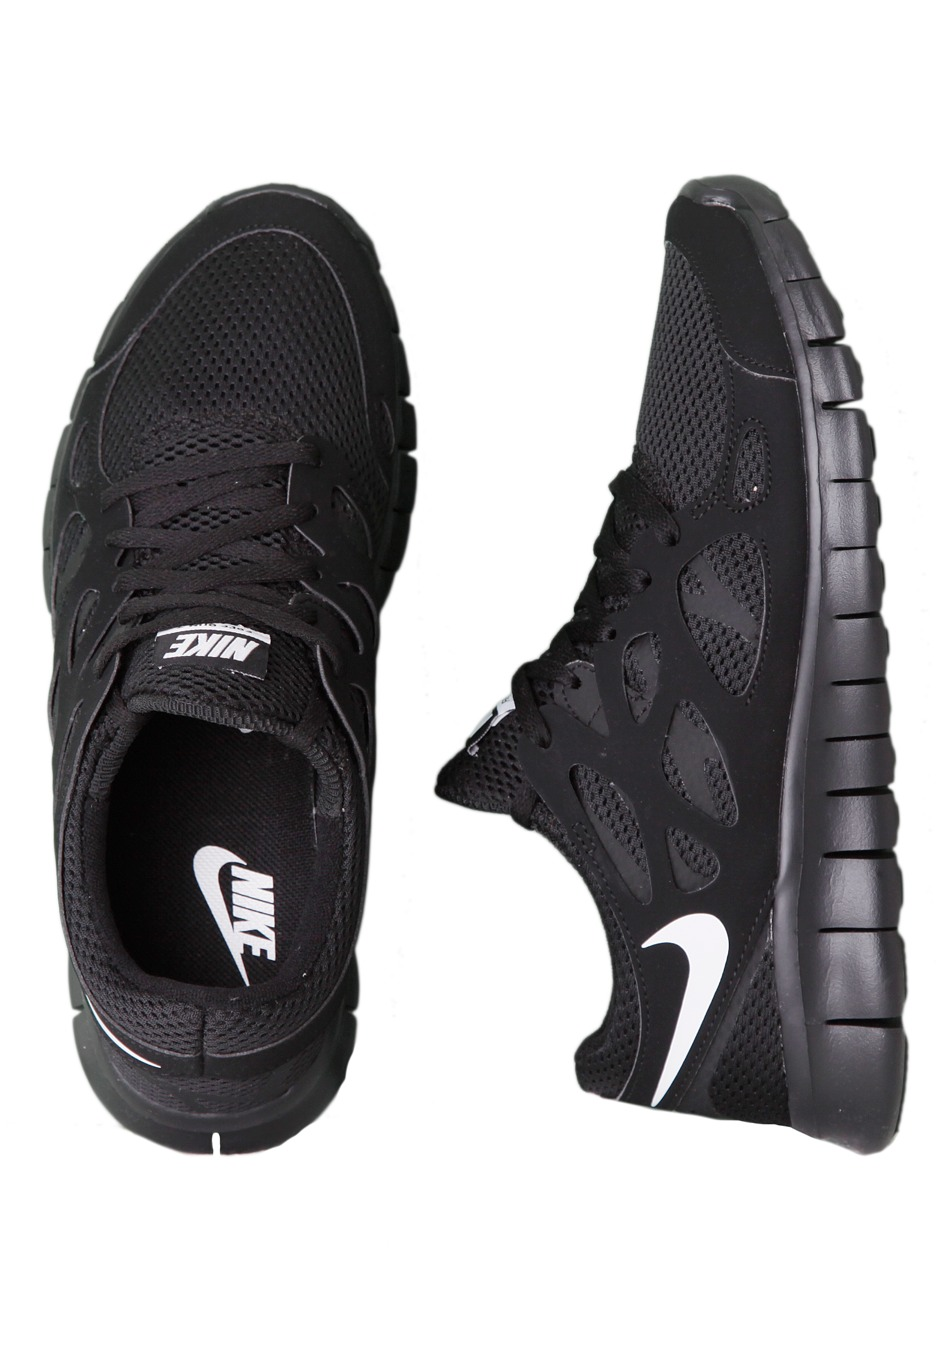 Nike - Free Run 2 NSW Black/White/Black - Shoes